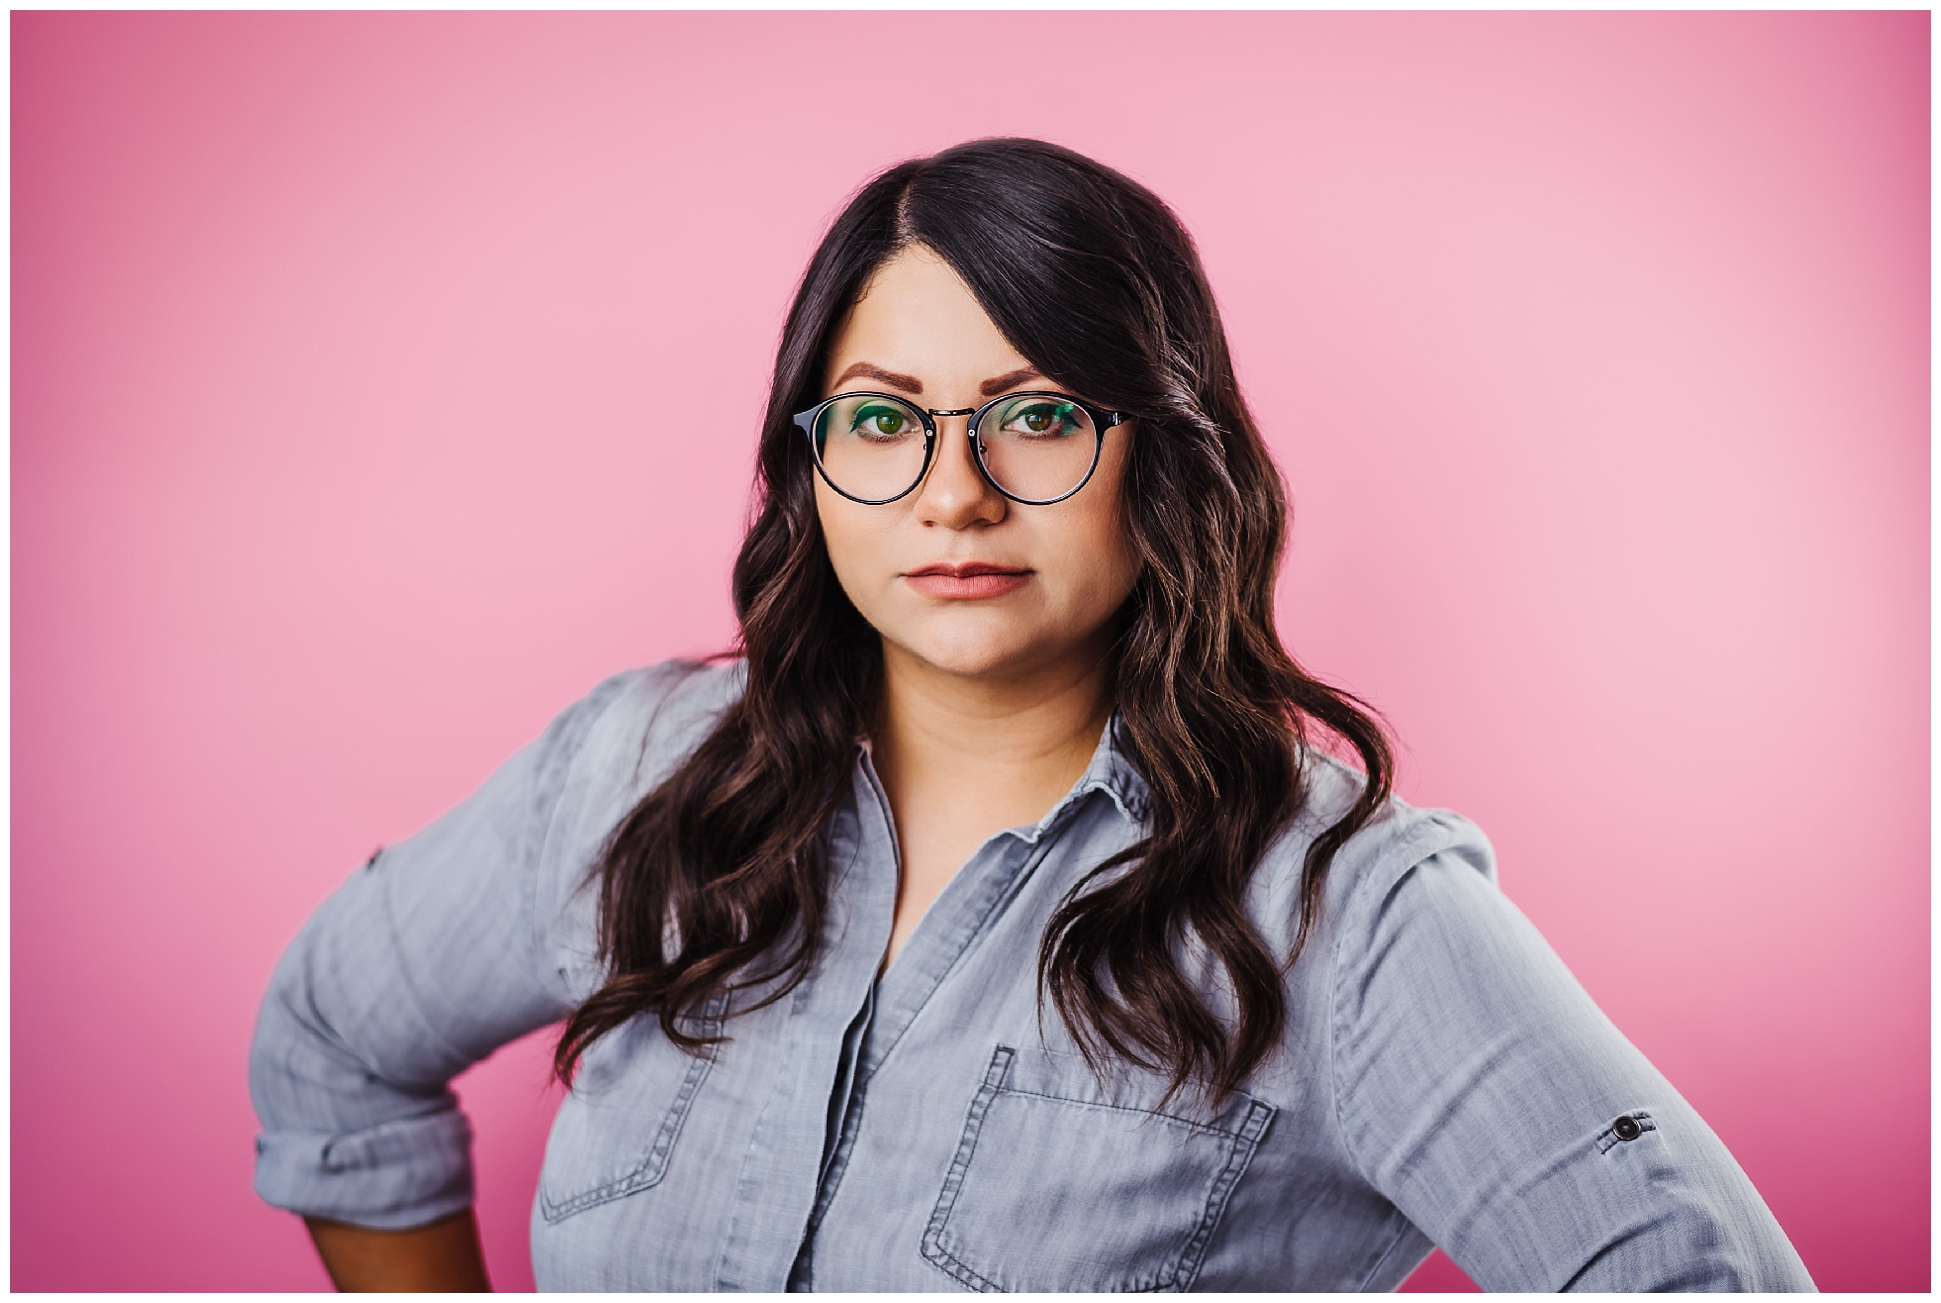 Tampa-portrait-photographer-pink-backdrop-glasses-nerd-expressive_0109.jpg